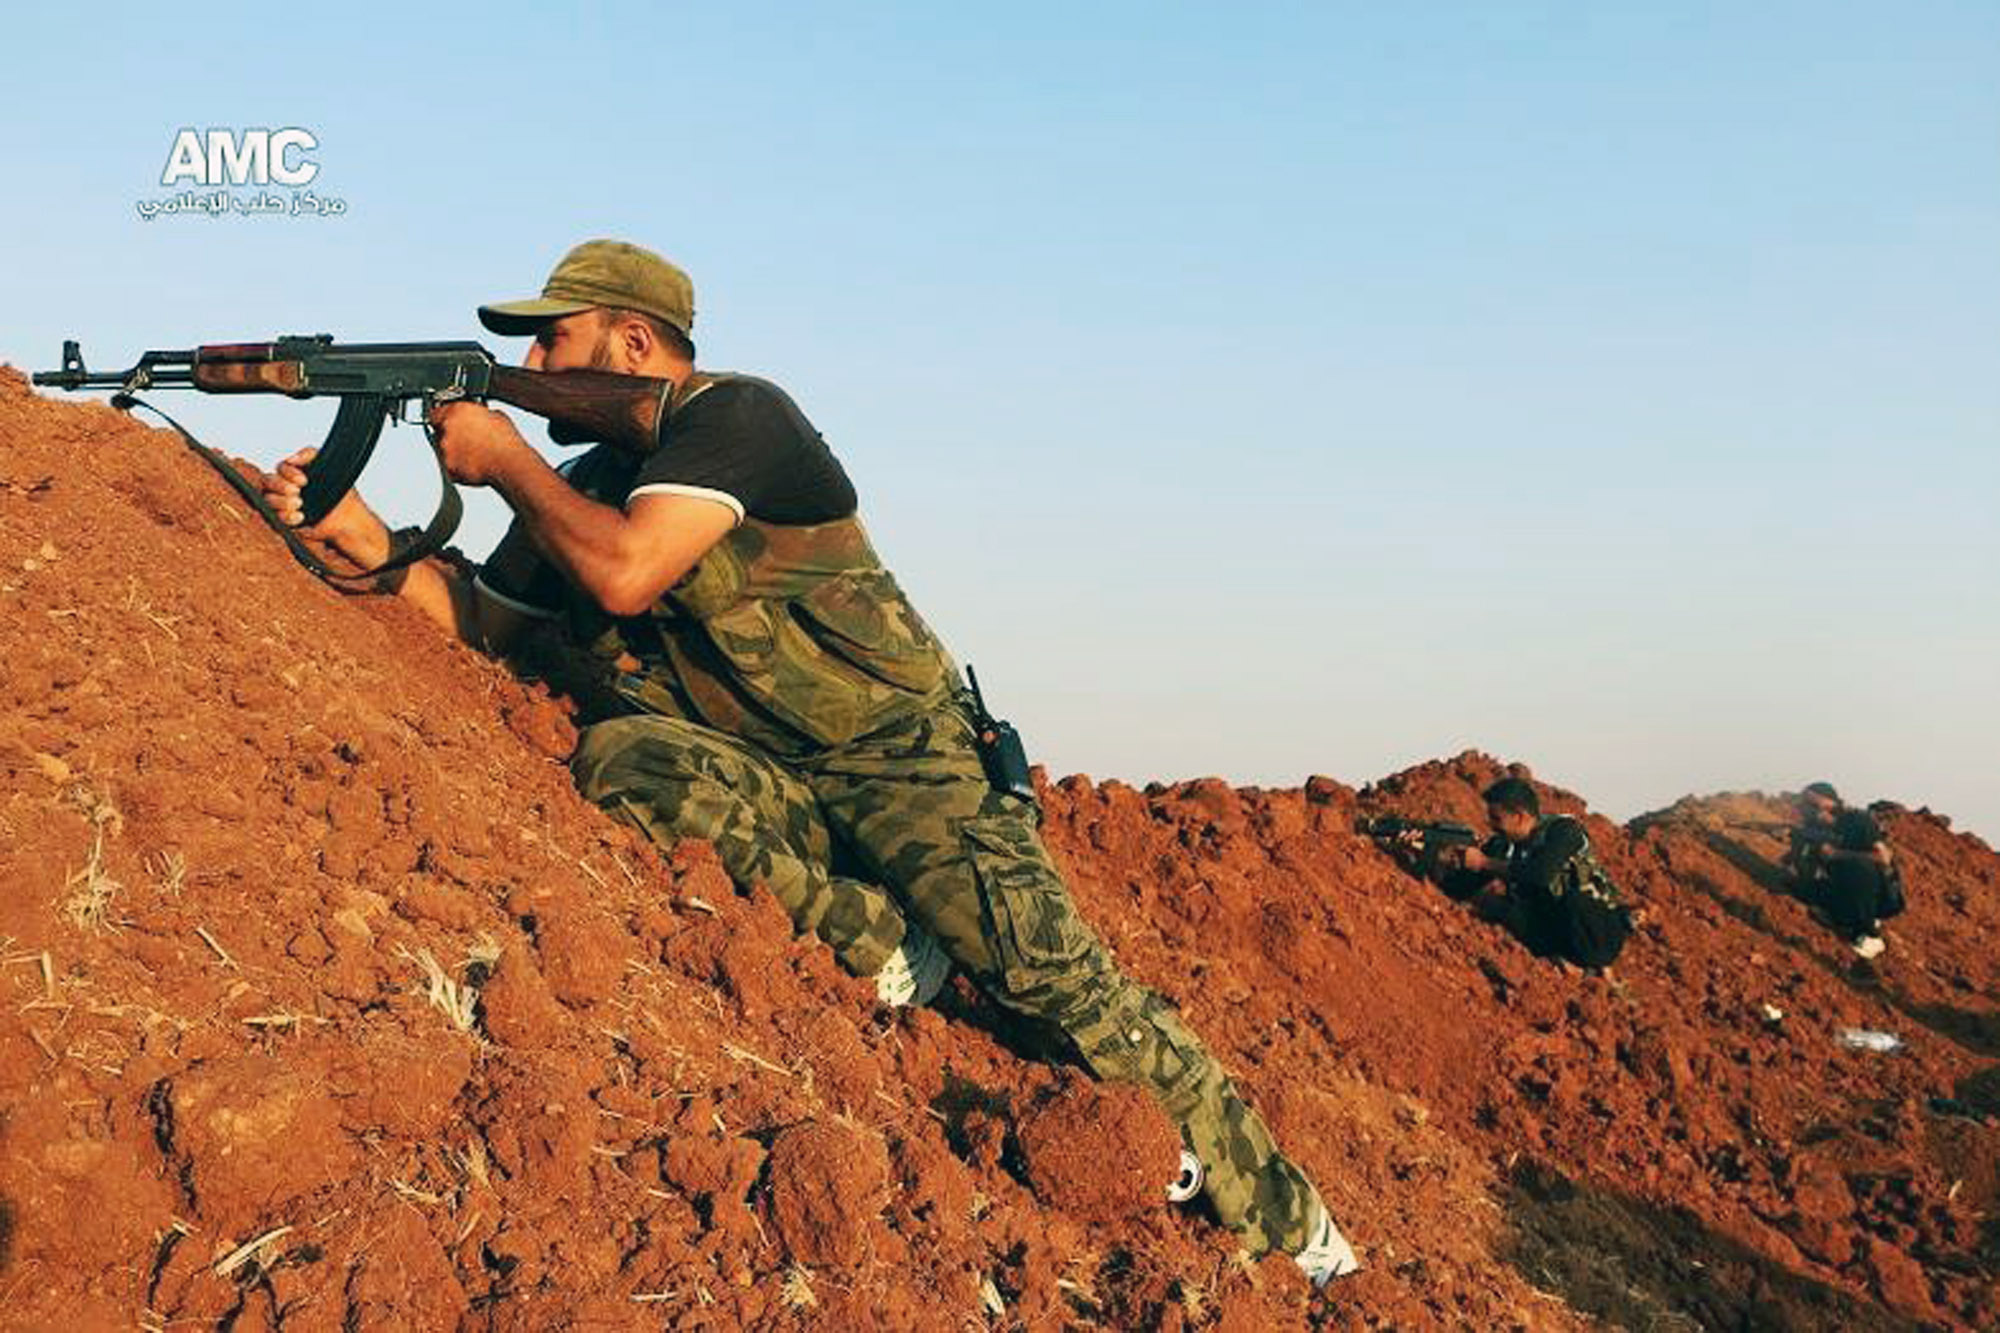 A photo provided by the antigovernment activist group Aleppo Media Center shows a Free Syrian Army fighter aiming his weapon during a battle with Islamic State militants in Aleppo, Syria, on Aug. 17, 2014